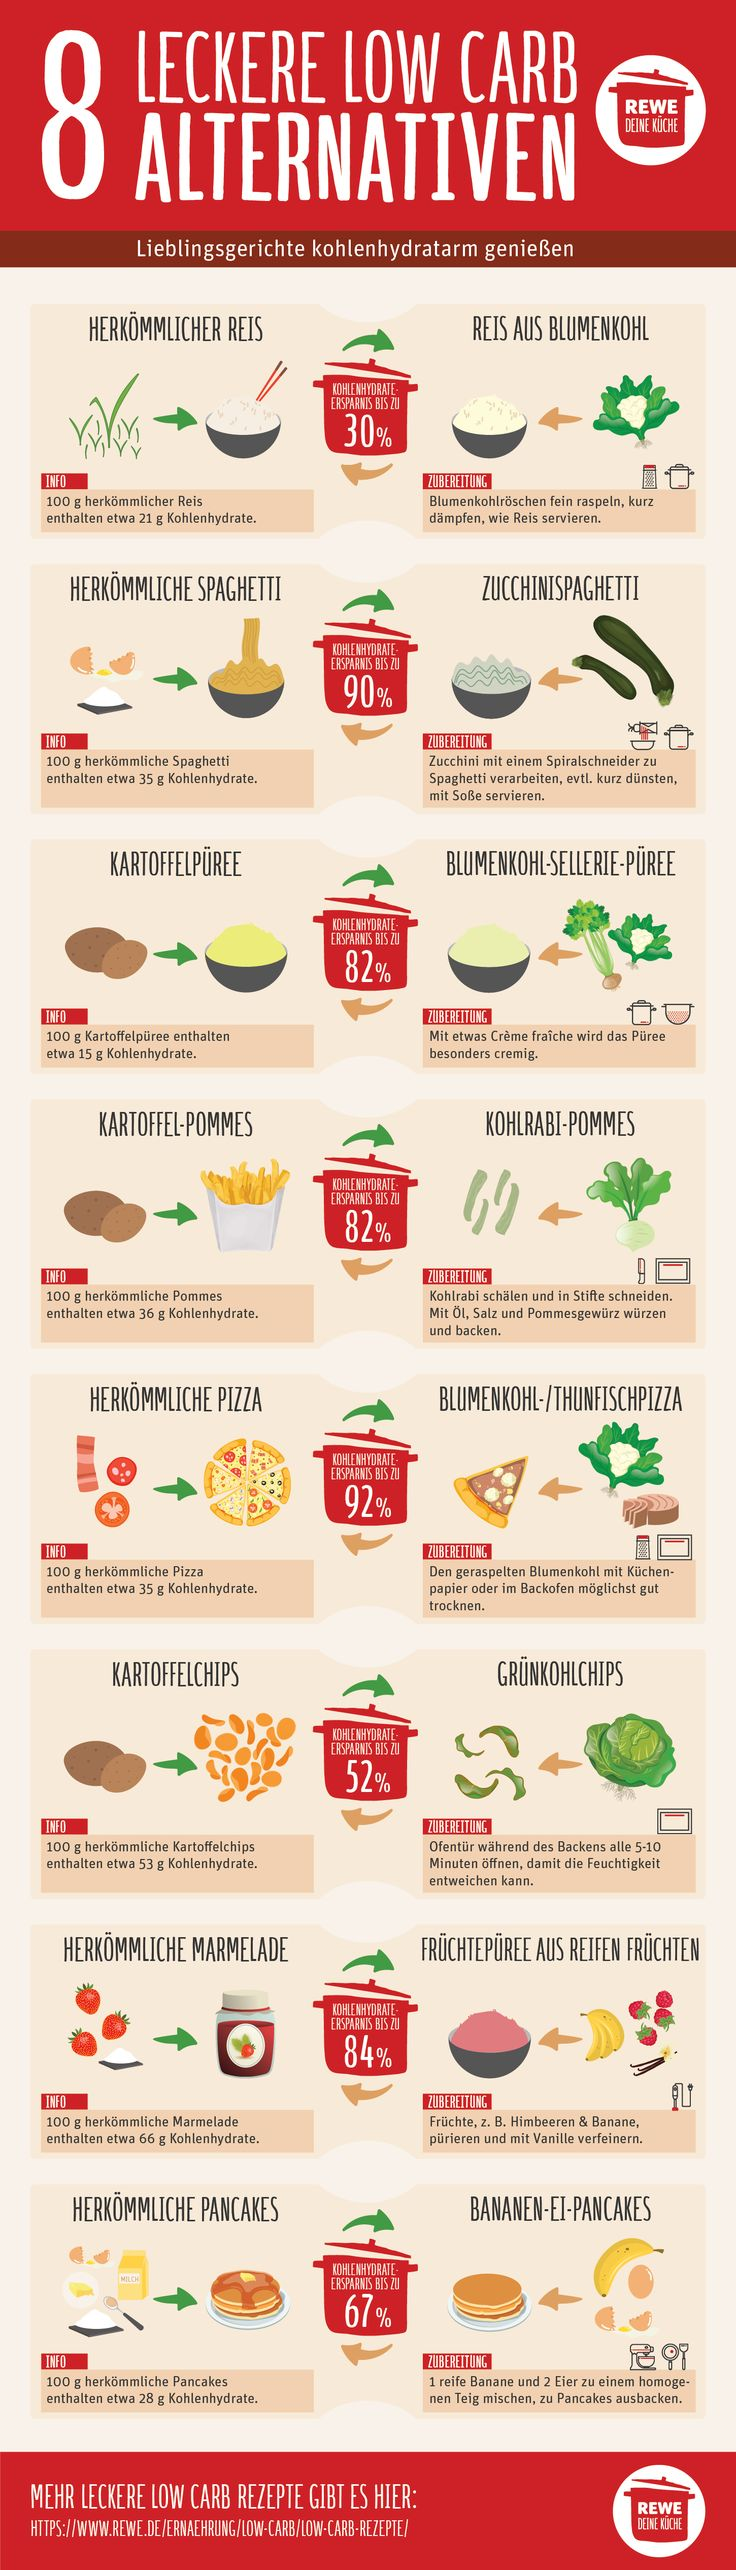 Low Carb Infografik https://www.rewe.de/ernaehrung/low-carb/